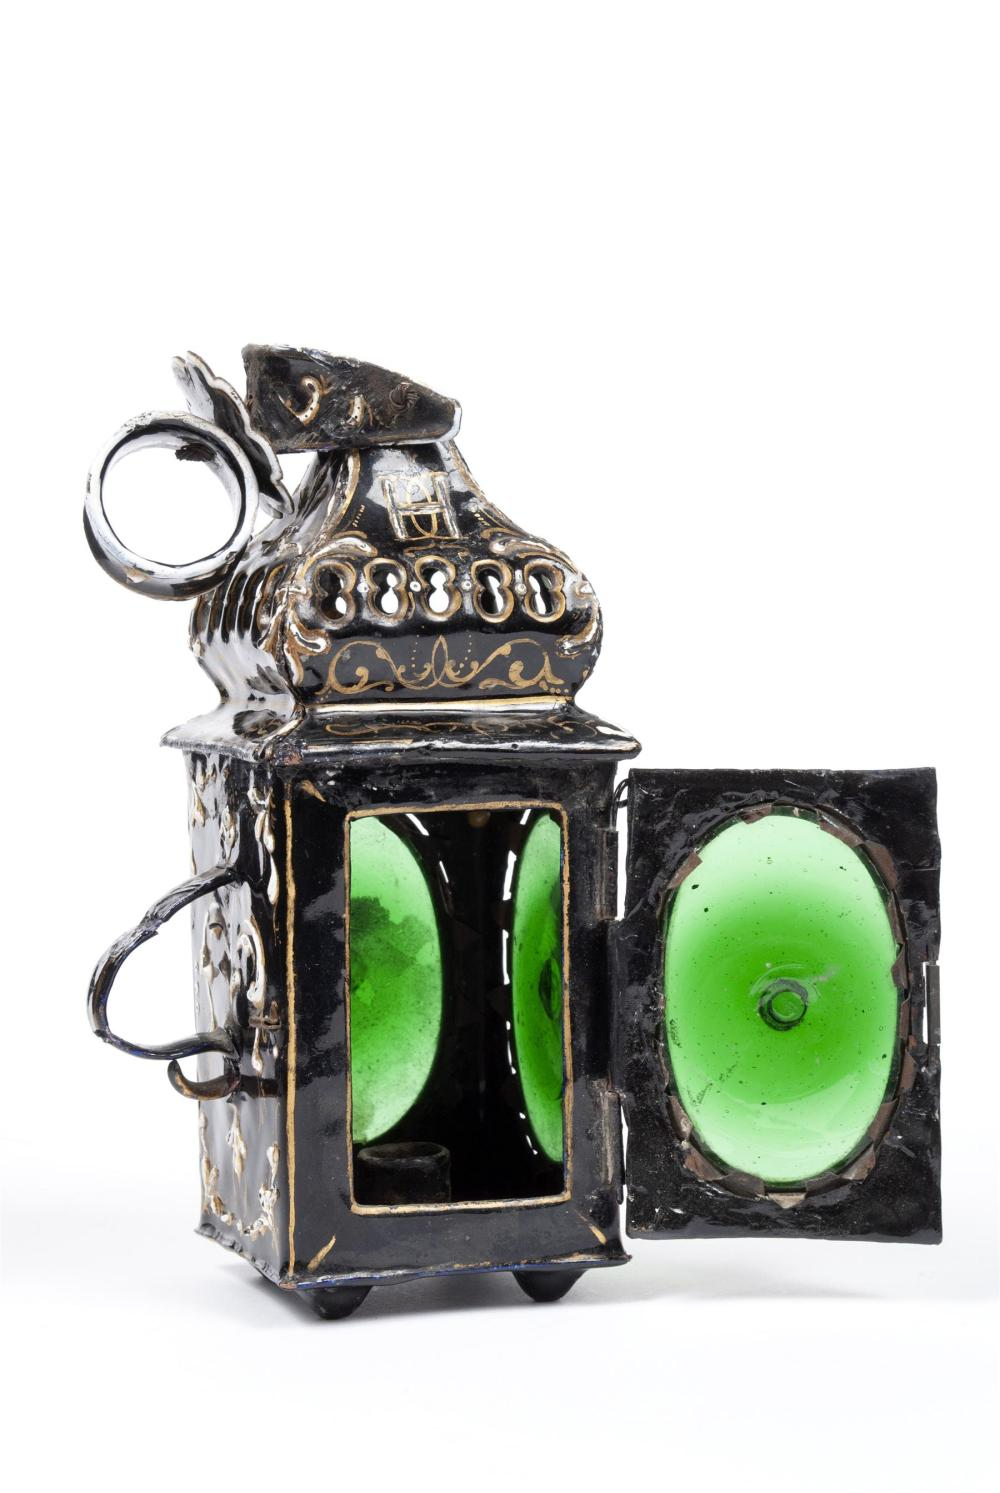 ENAMEL CARRIAGE LANTERN ATTRIBUTED TO THE LAUDIN FAMILY